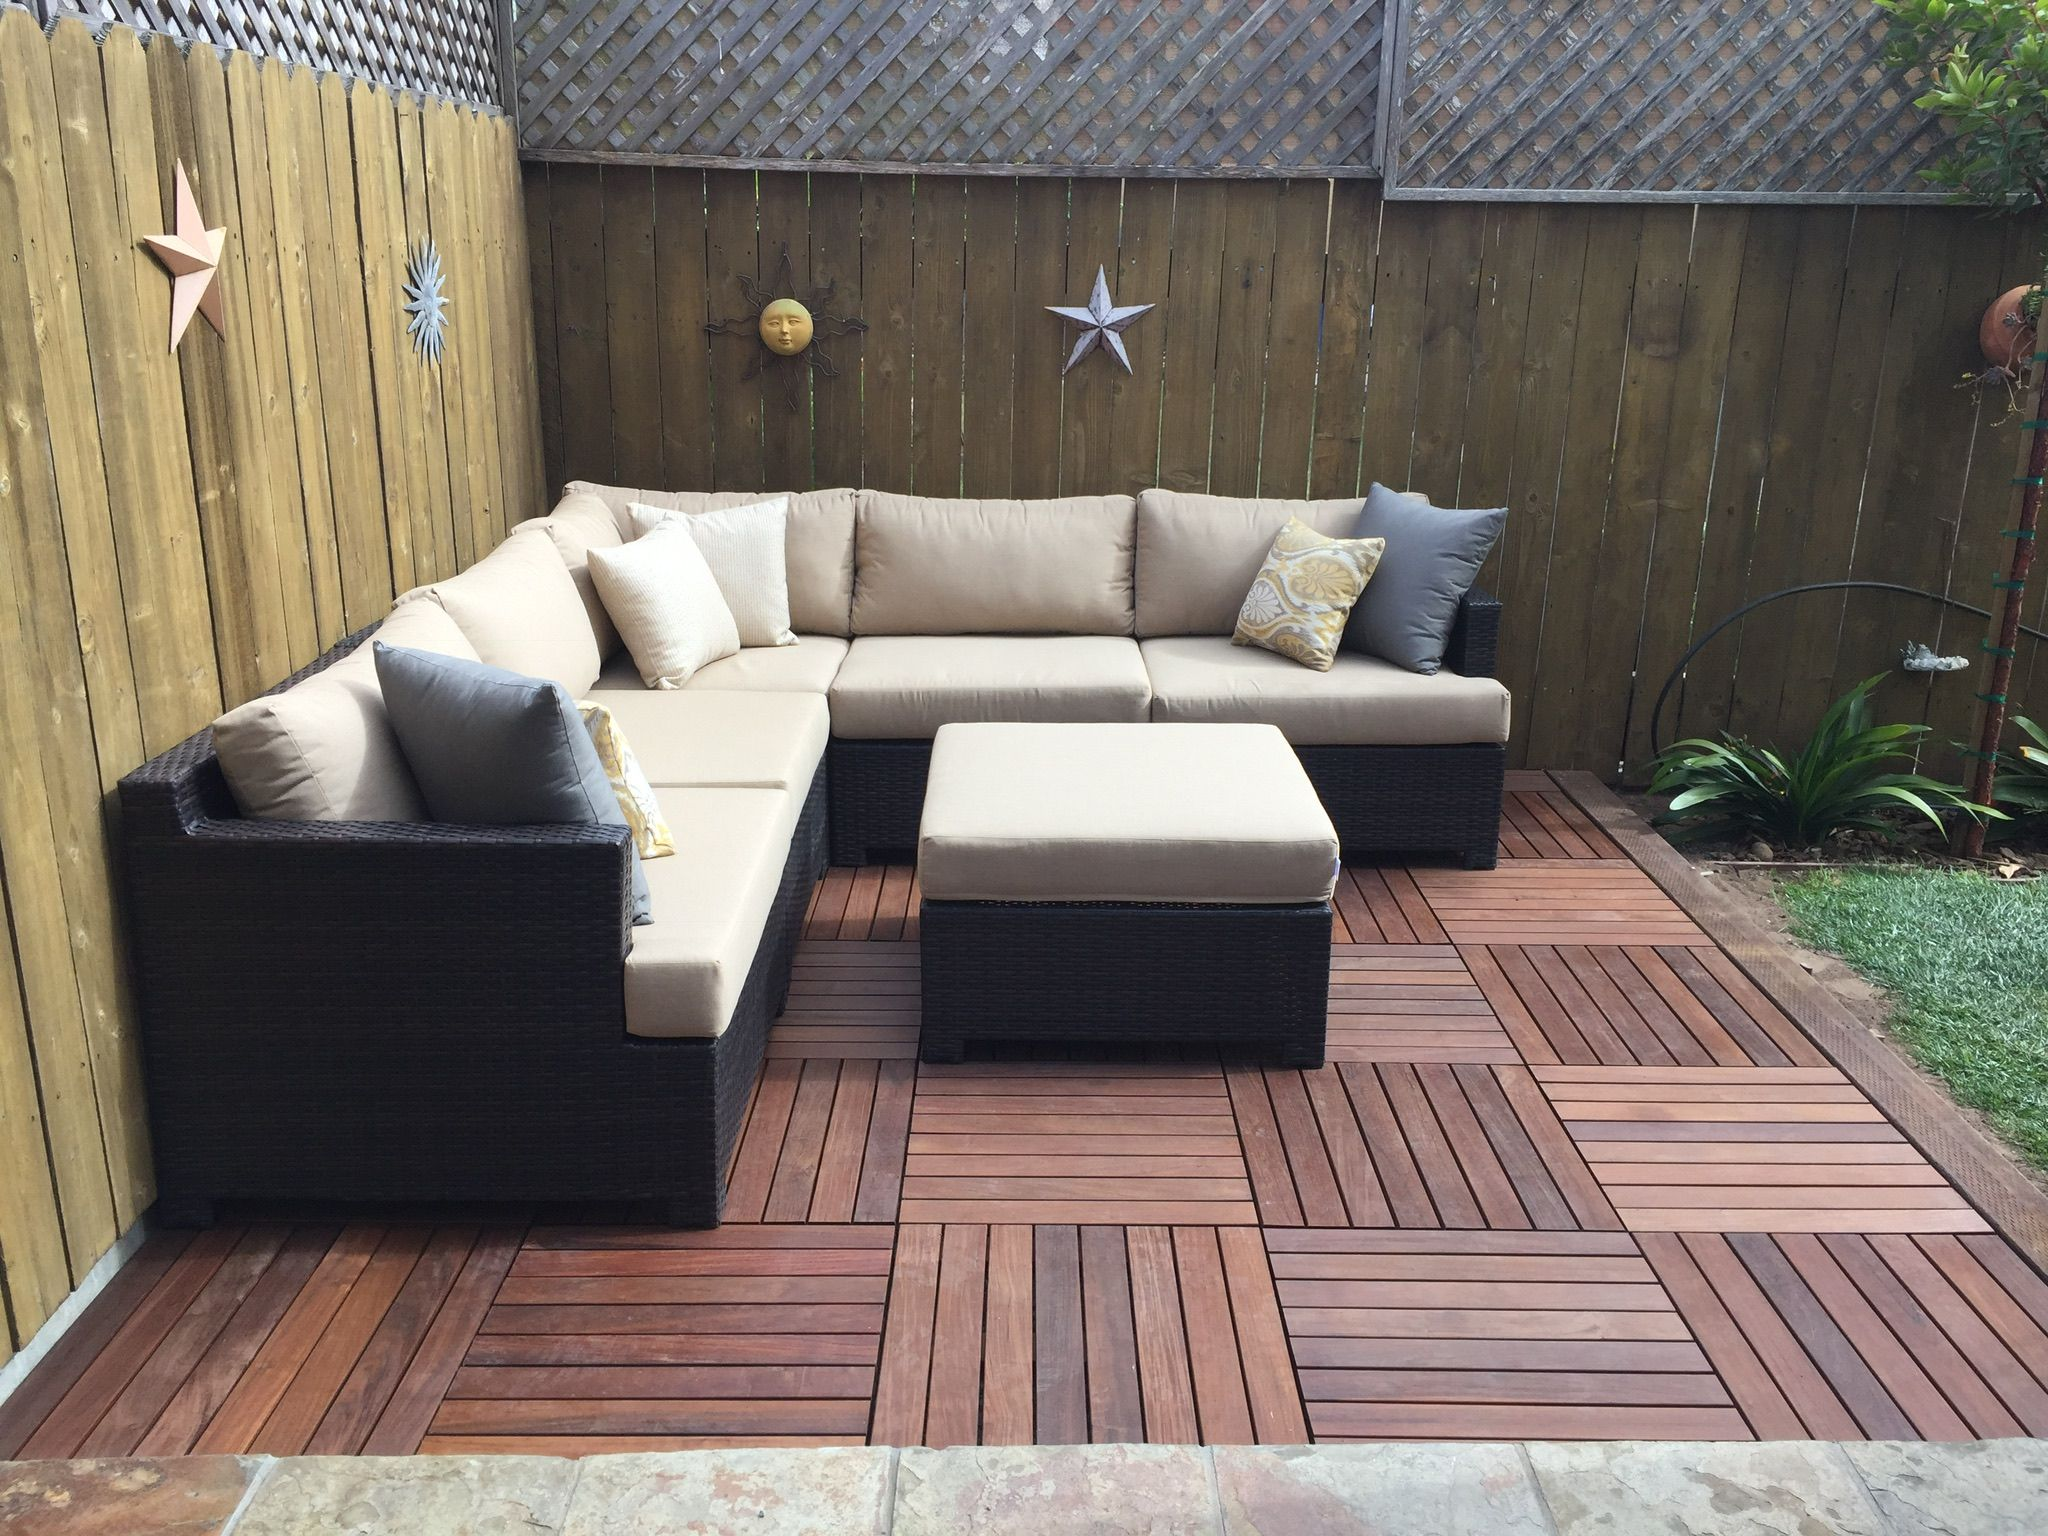 Awesome Deck Wise Tiles Small Yards Outdoor Sectional Outdoor Andrewgaddart Wooden Chair Designs For Living Room Andrewgaddartcom